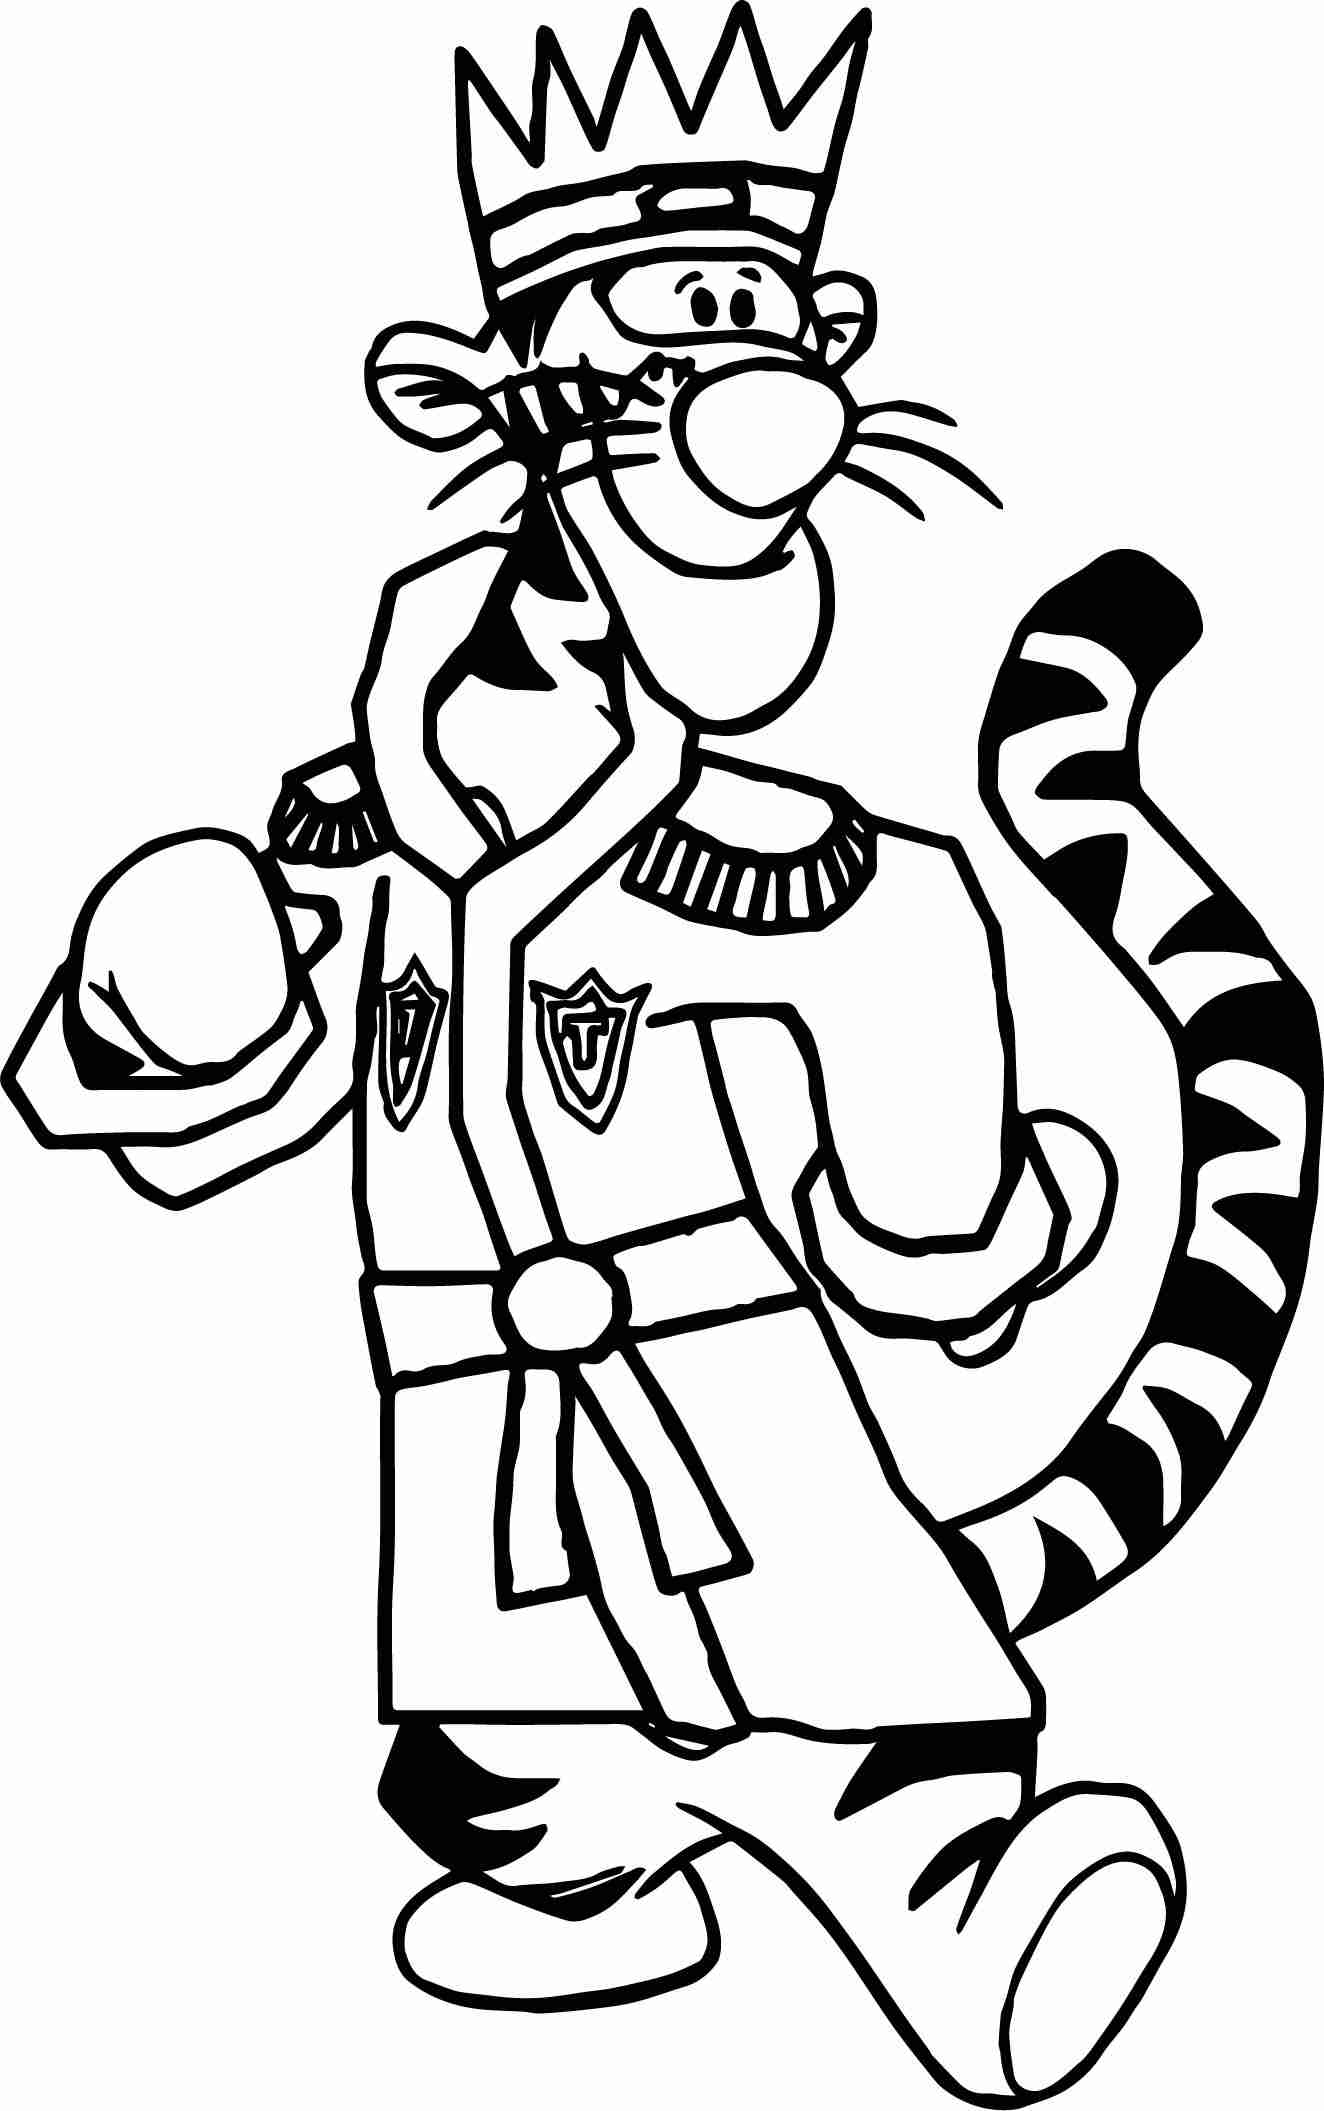 Tigger Coloring Pages To Print At Getdrawings Com Free For